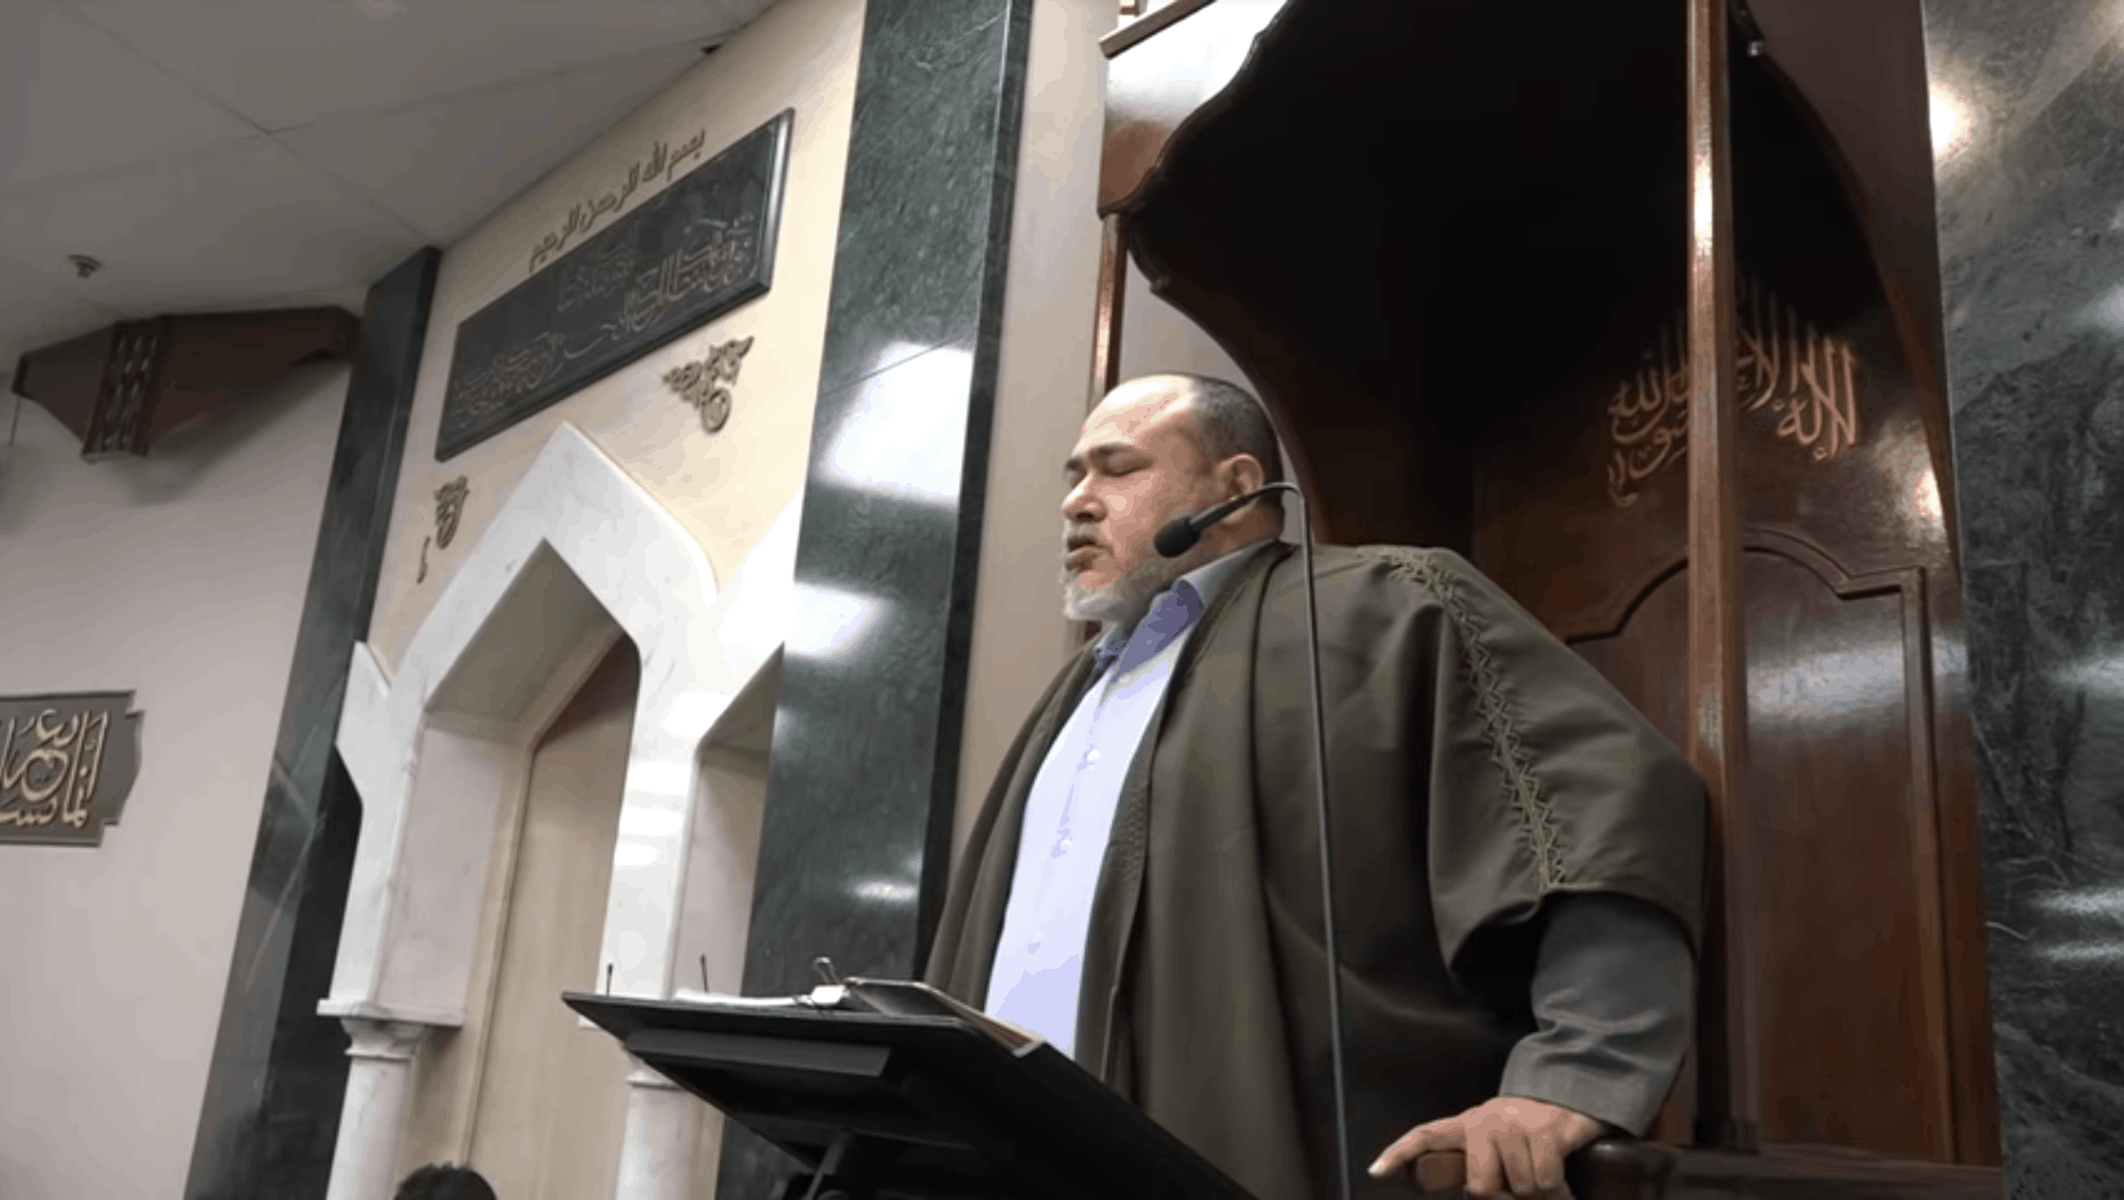 Khaled Abou El Fadl – Islamophobia, Racism and the New Zealand Massacre